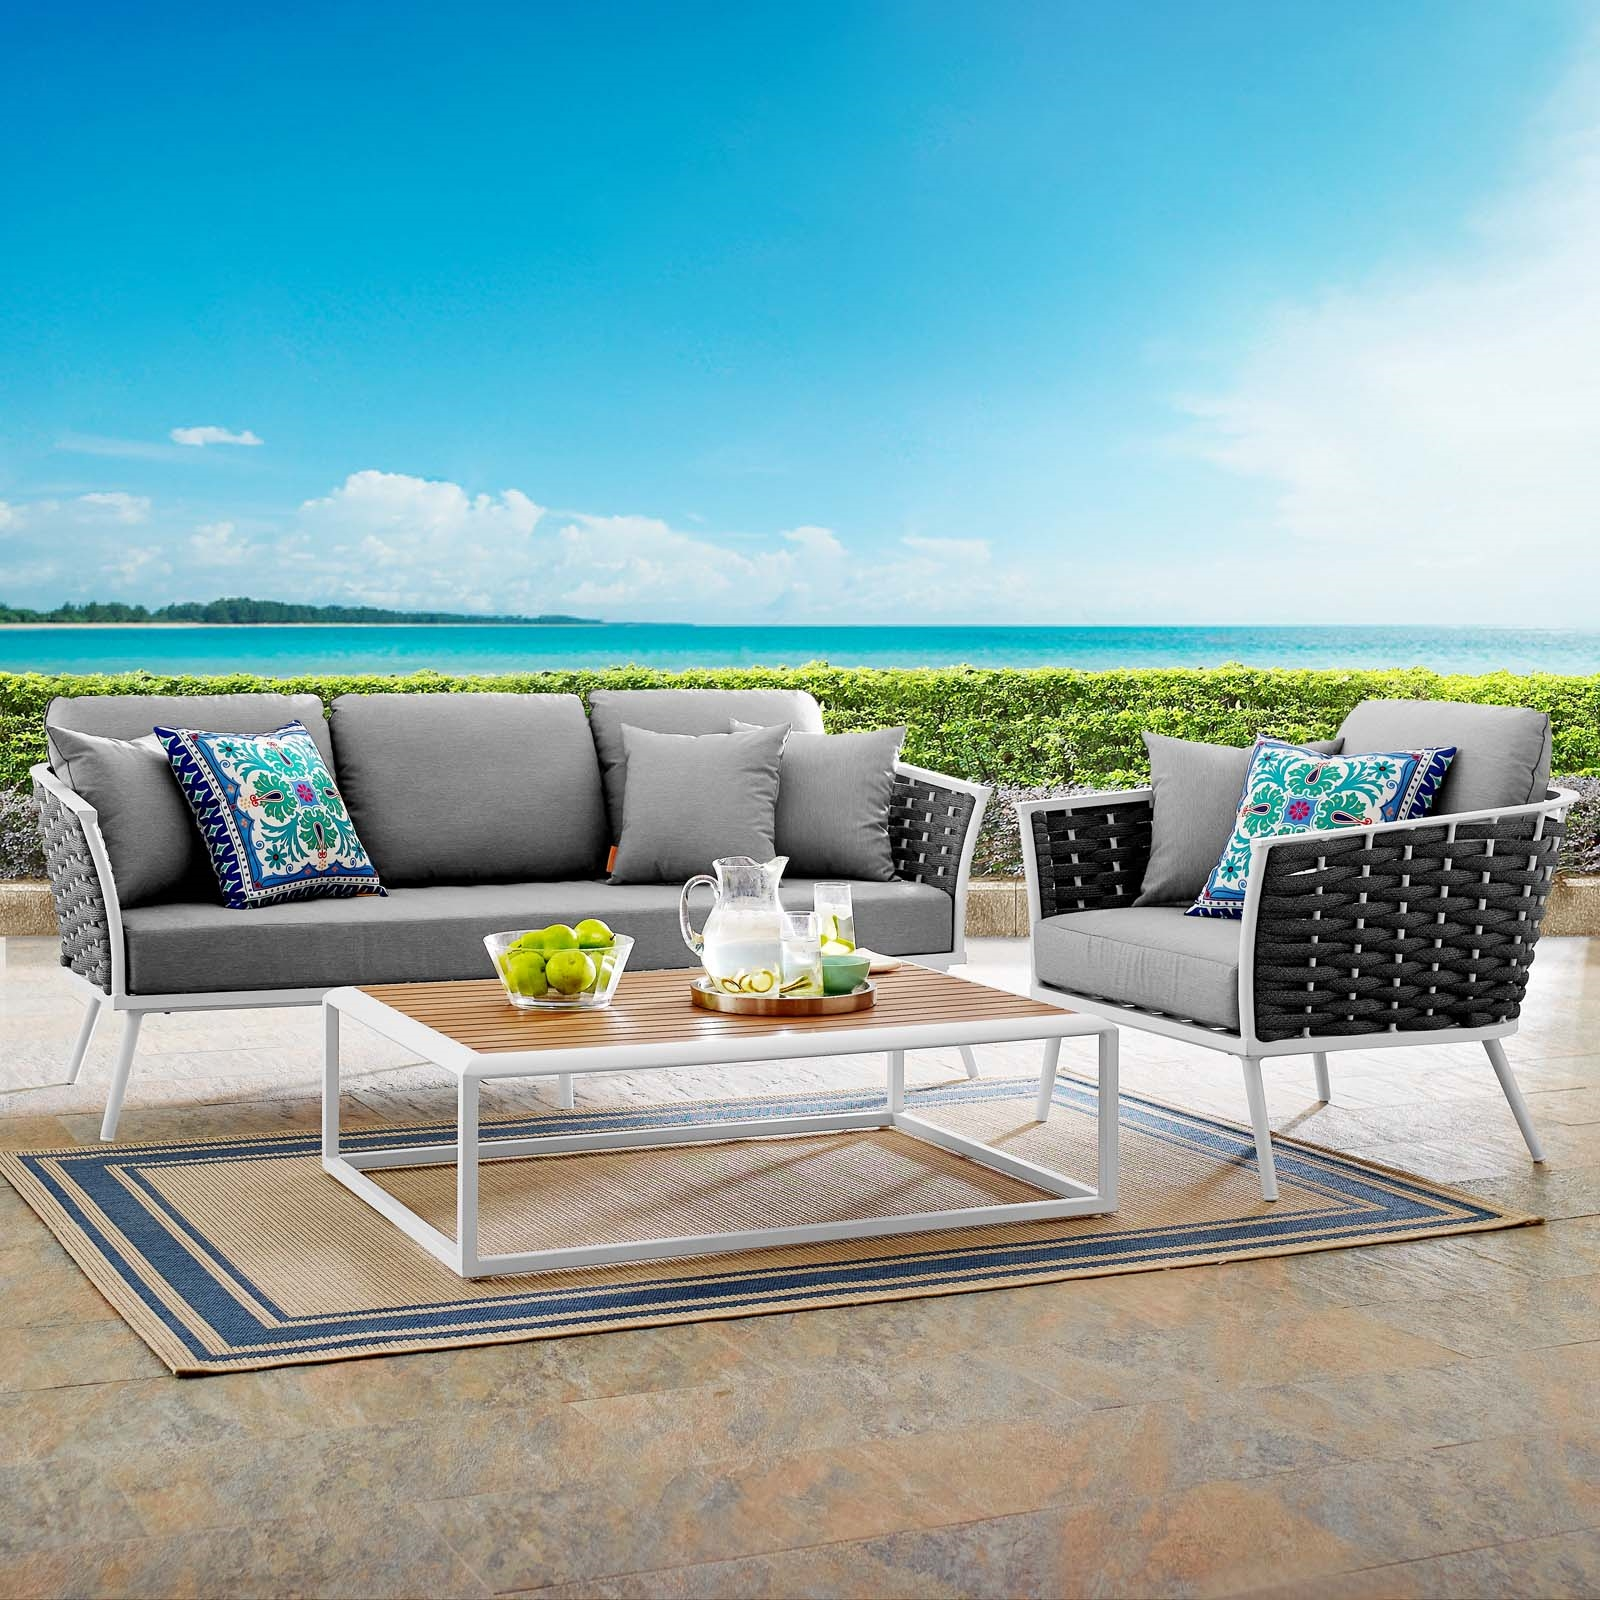 Stance 3 Piece Outdoor Patio Aluminum Sectional Sofa Set in White Gray